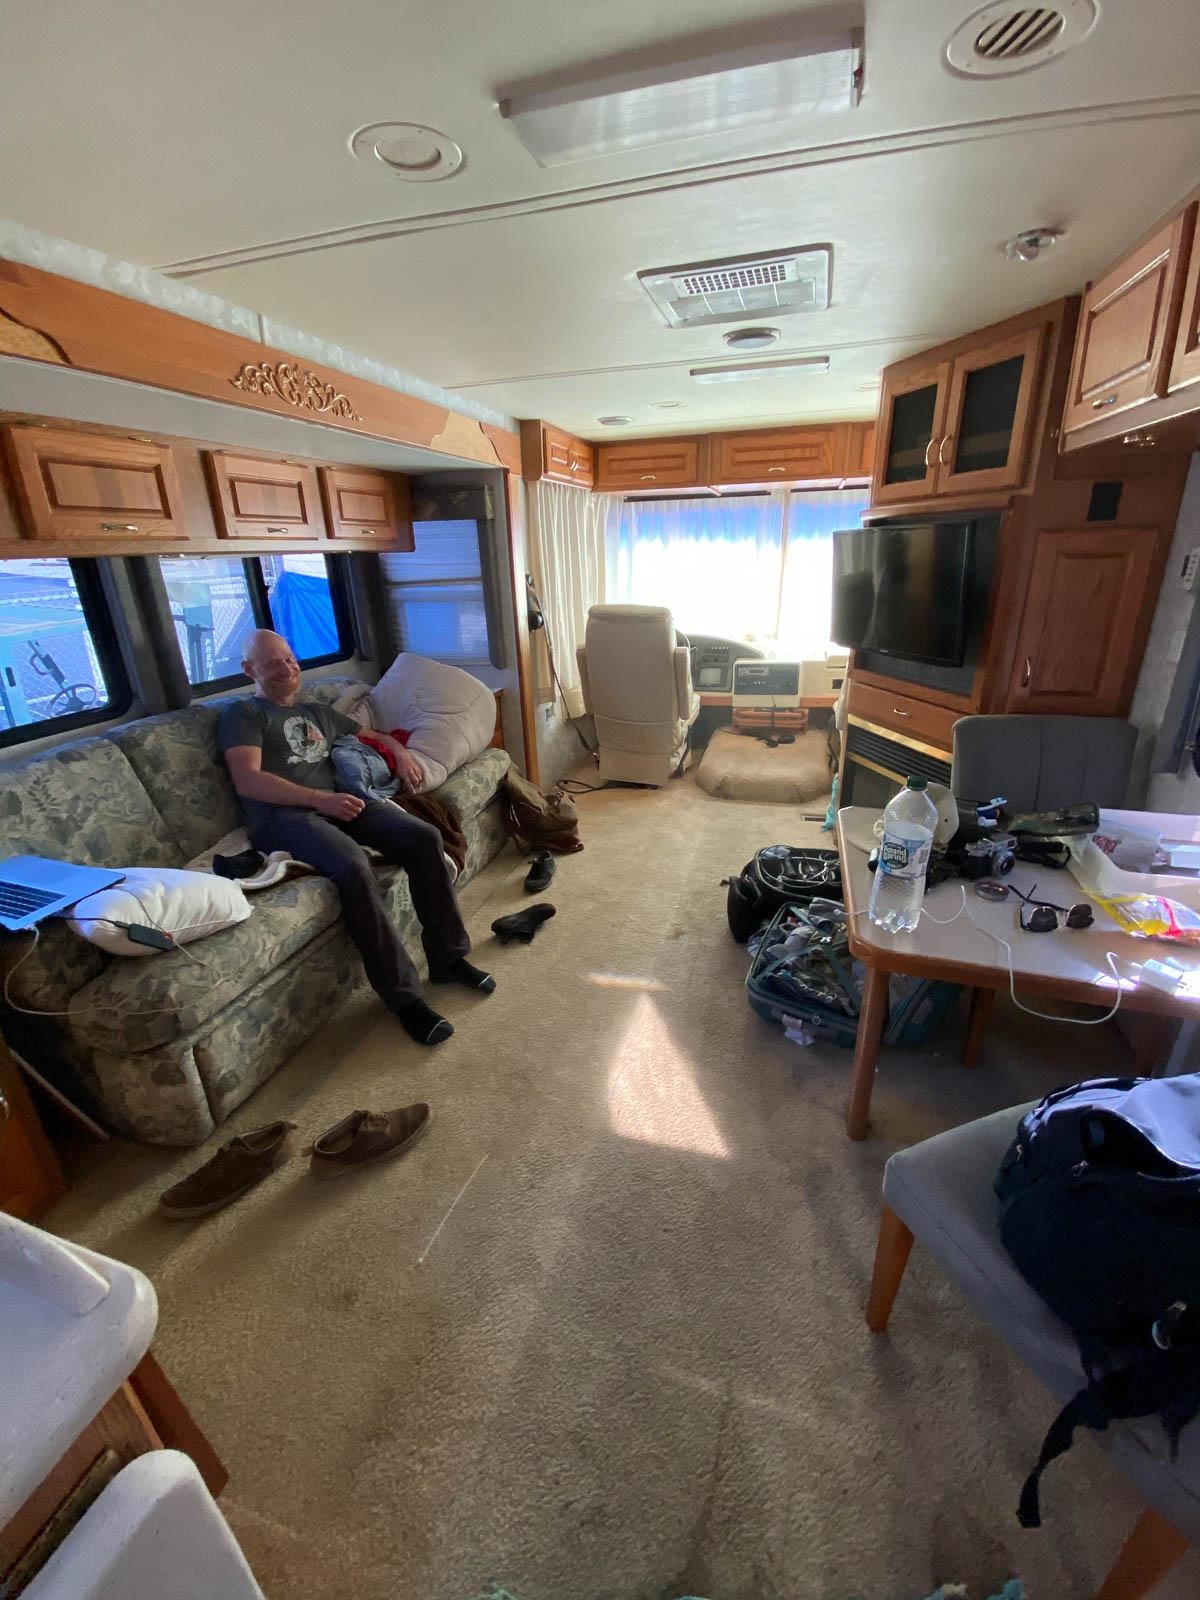 Camper life, not so bad